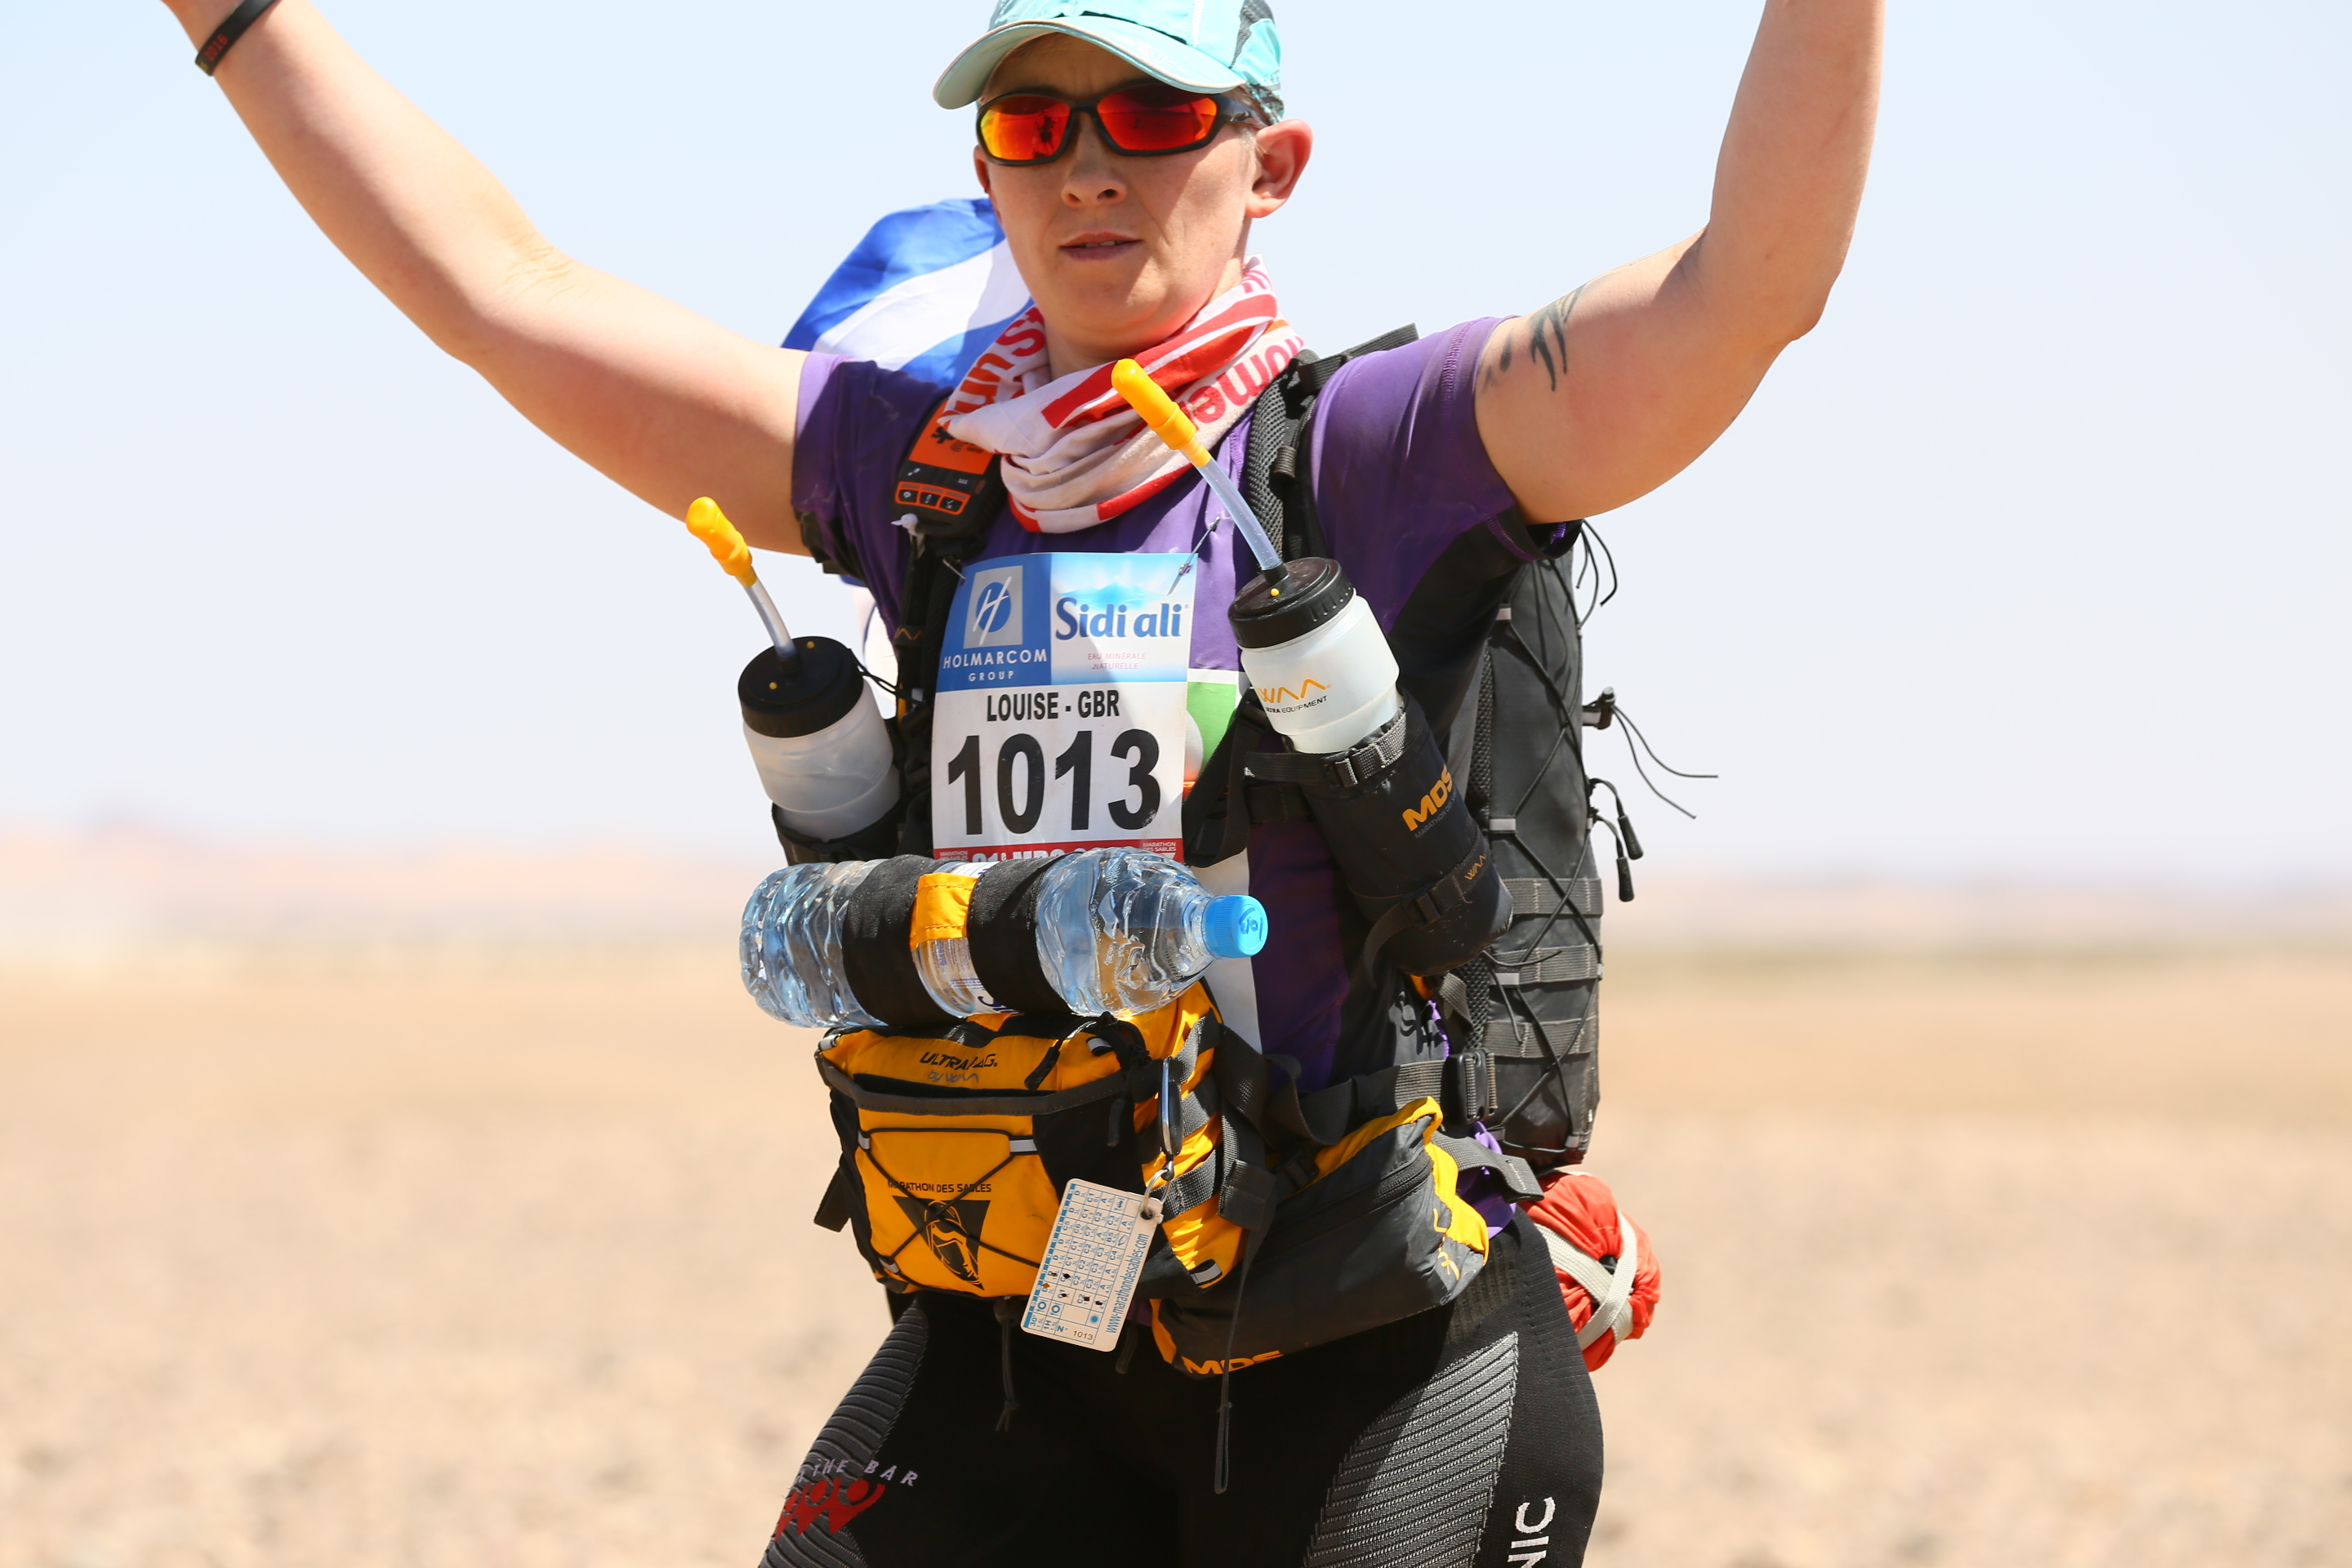 Louise Johnstone running the Marathon Des Sables, a race in the Sahara Desert earlier this year.